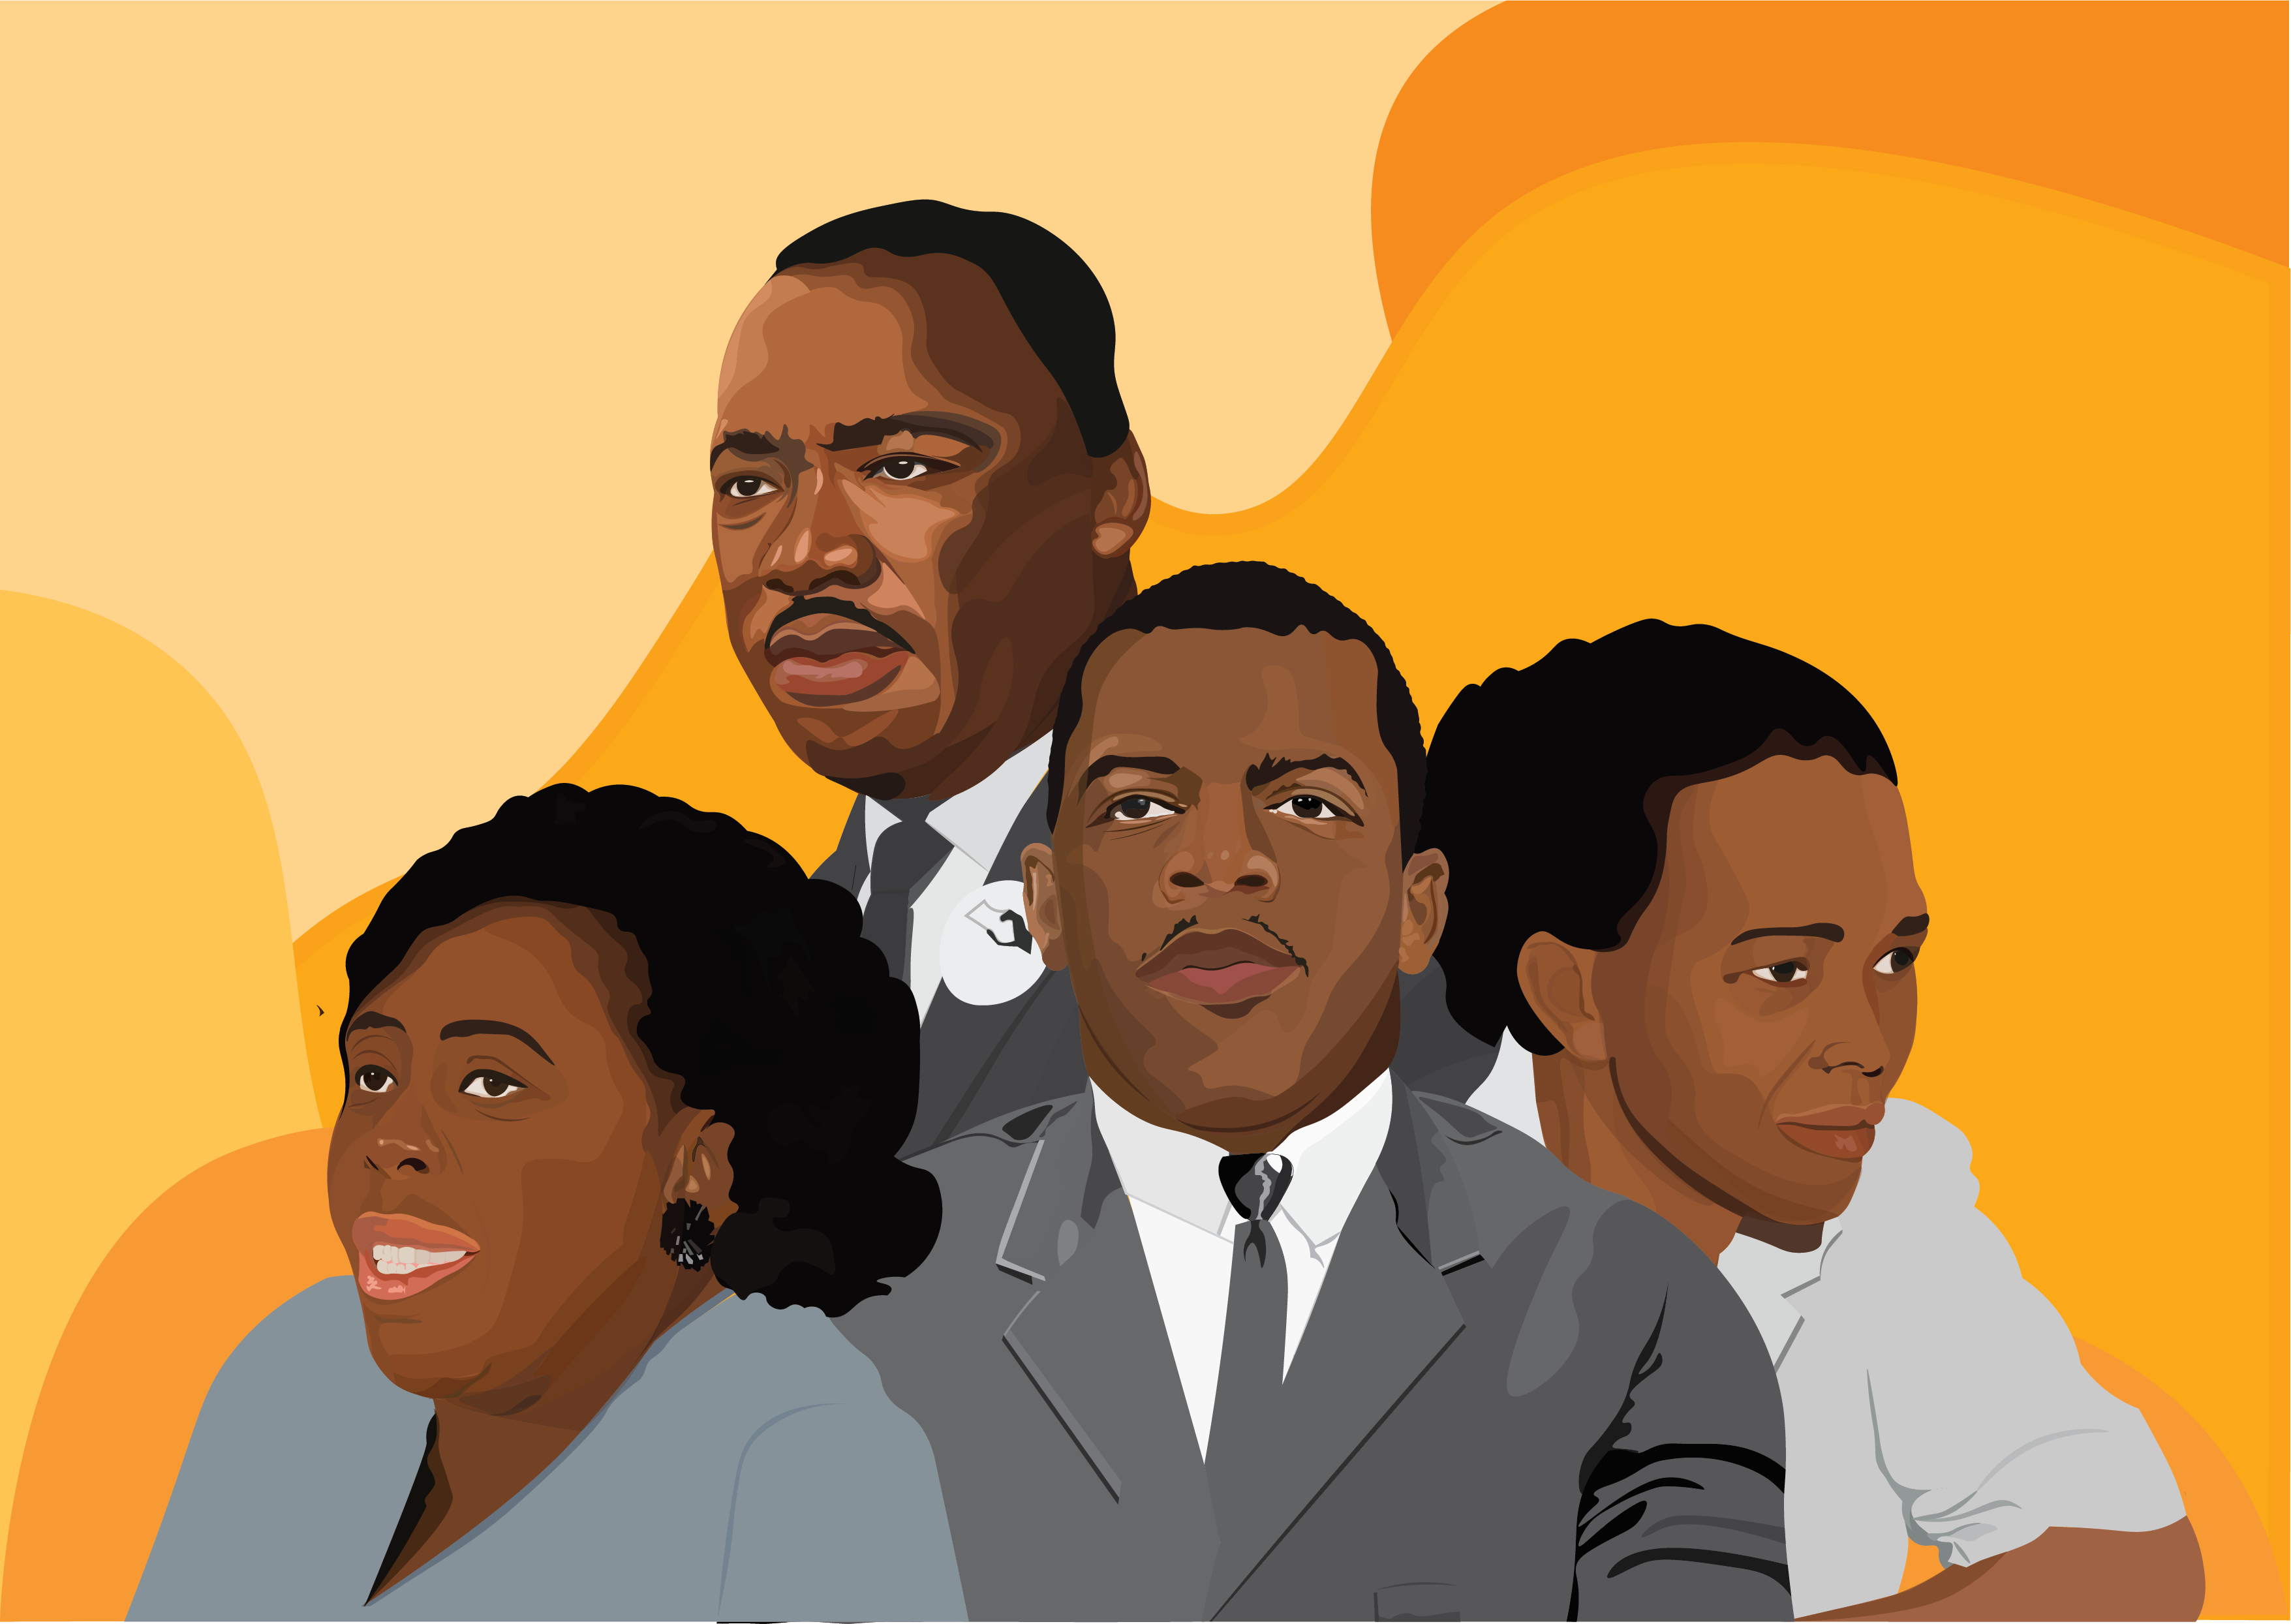 A Love Letter to the Civil Rights Generation